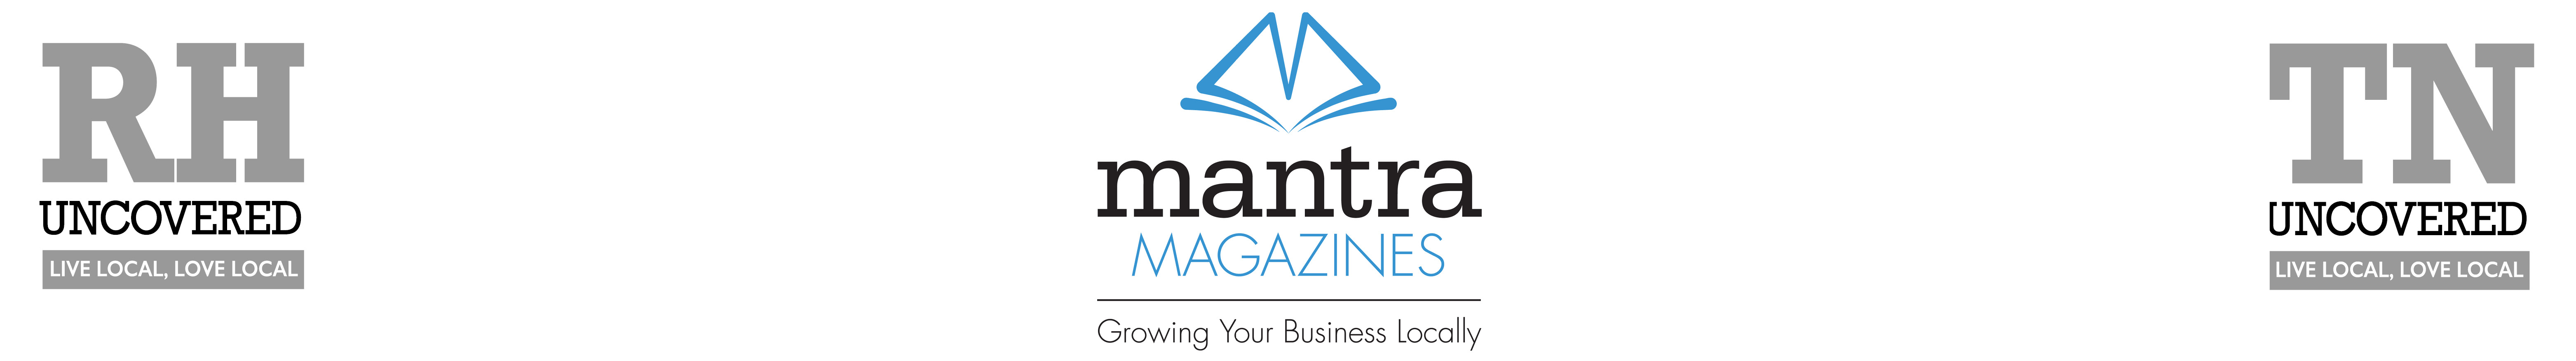 Mantra Magazines Ltd